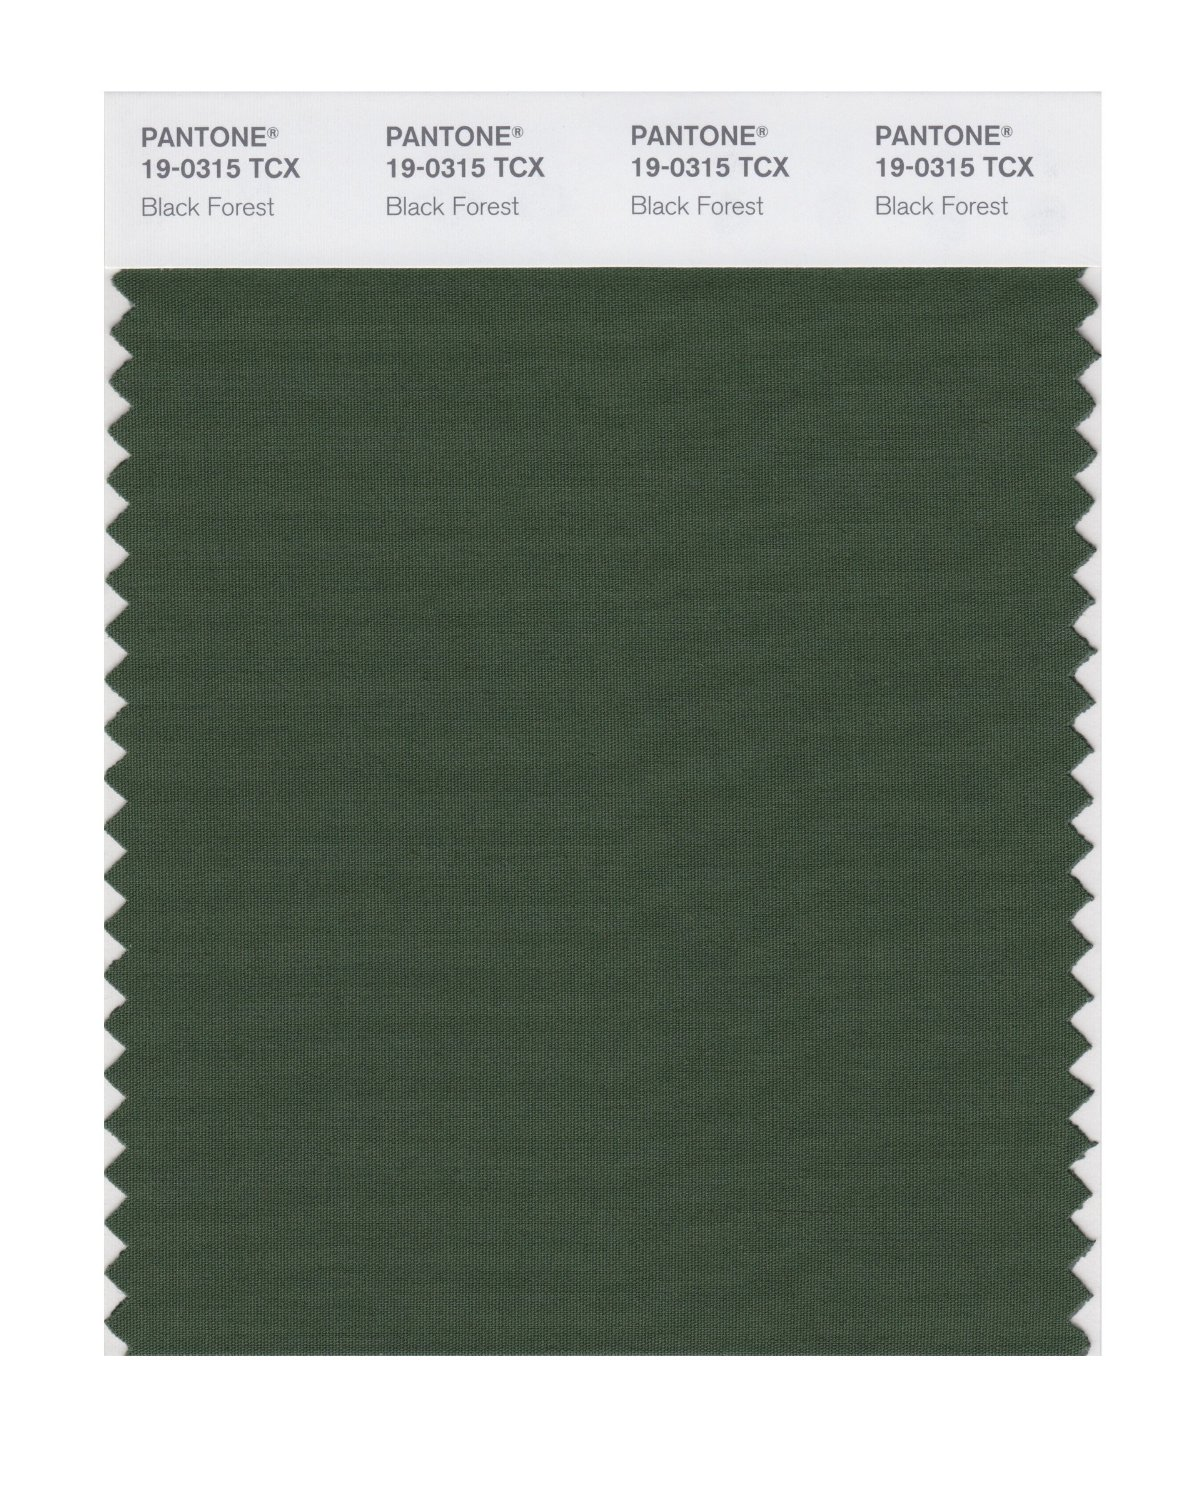 Pantone Smart Swatch 19-0315 Black Forest